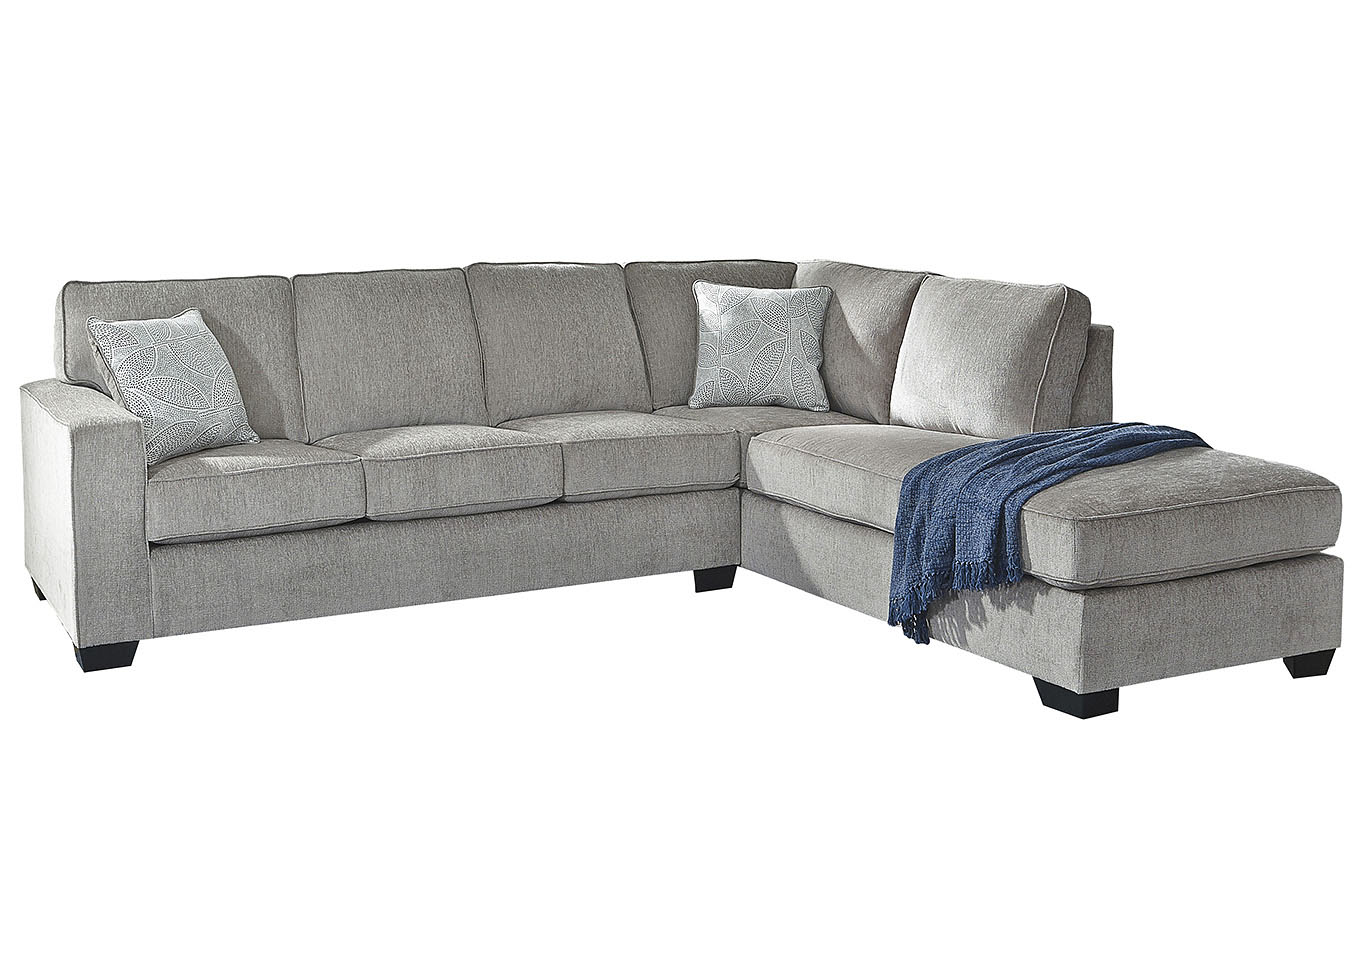 Altari Alloy Left-Arm Facing Chaise Sectional,Signature Design By Ashley